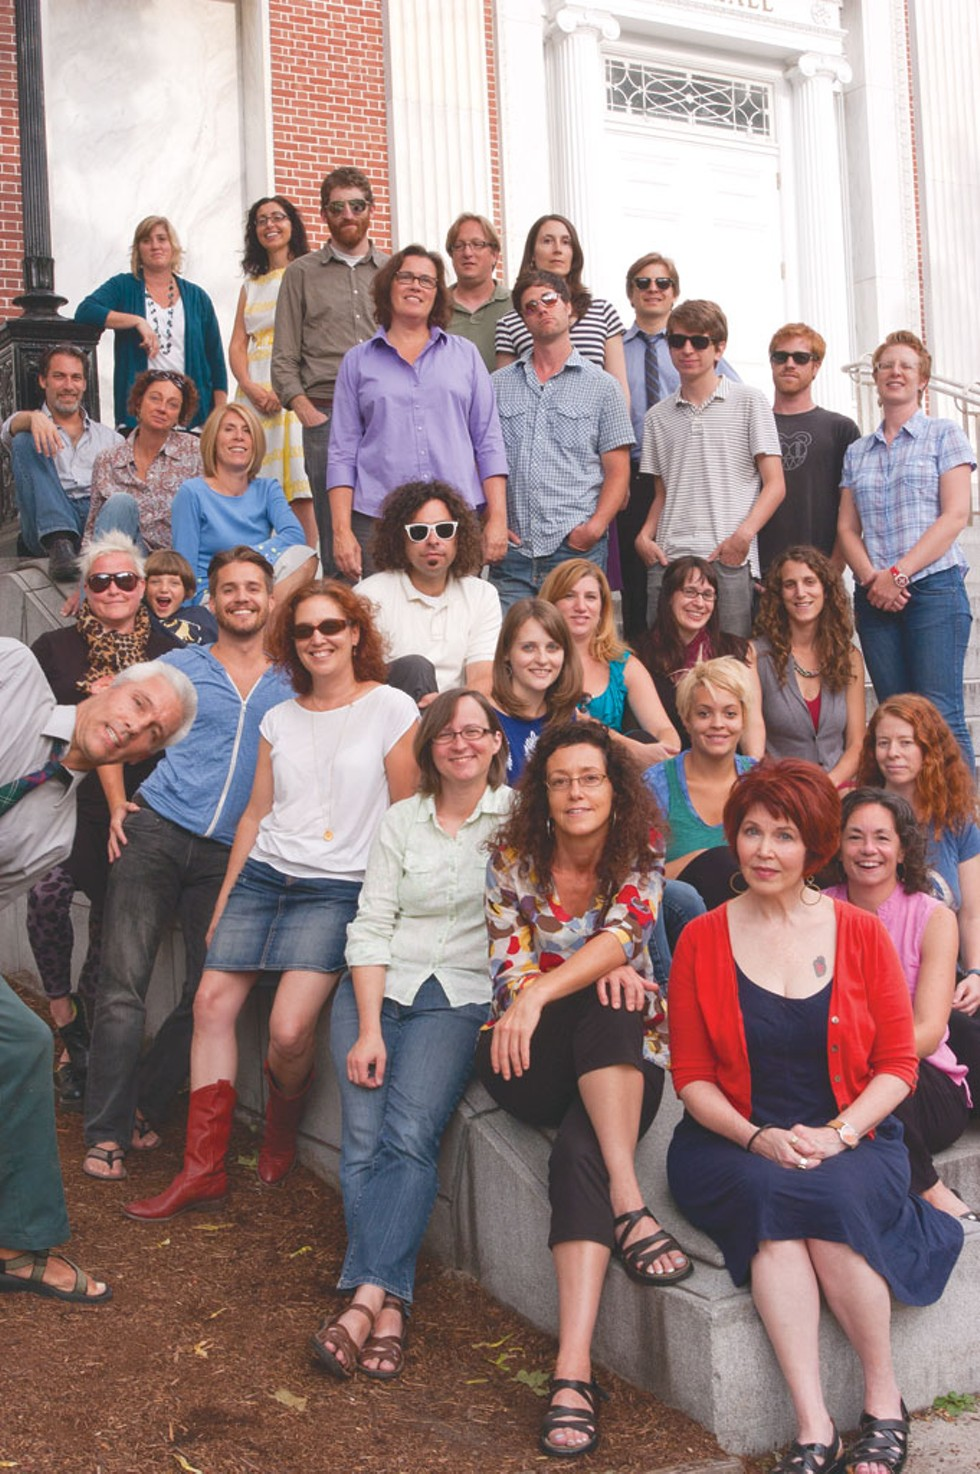 FRONT: Paula Routly, Pamela Polston, Kate Laddison. - SECOND ROW: Cathy Resmer, Celia Hazard, Cheryl Brownell. - THIRD ROW: Matthew Thorsen, Corin Hirsch, Carolyn Fox. - FOURTH ROW: Diane Sullivan, Zelda Totten, Don Eggert, Colby Roberts, Brooke Bousquet, Jessica Piccirilli, Megan James. - FIFTH ROW: Krystal Woodward, Michelle Brown, Judy Beaulac, Andrew Sawtell, Tyler Machado, Dan Bolles, Lauren Ober. - SIXTH ROW: Ken Picard, Andy Bromage, Shay Totten, Margot Harrison, Michael Bradshaw. - BACK: Robyn Birgisson, Eva Sollberger. - MISSING: Ashley Cleare, Meredith Coeyman, Steve Hadeka, Marcy Kass, Alice Levitt, Kate O'Neill. - PHOTO: Matthew Thorsen.